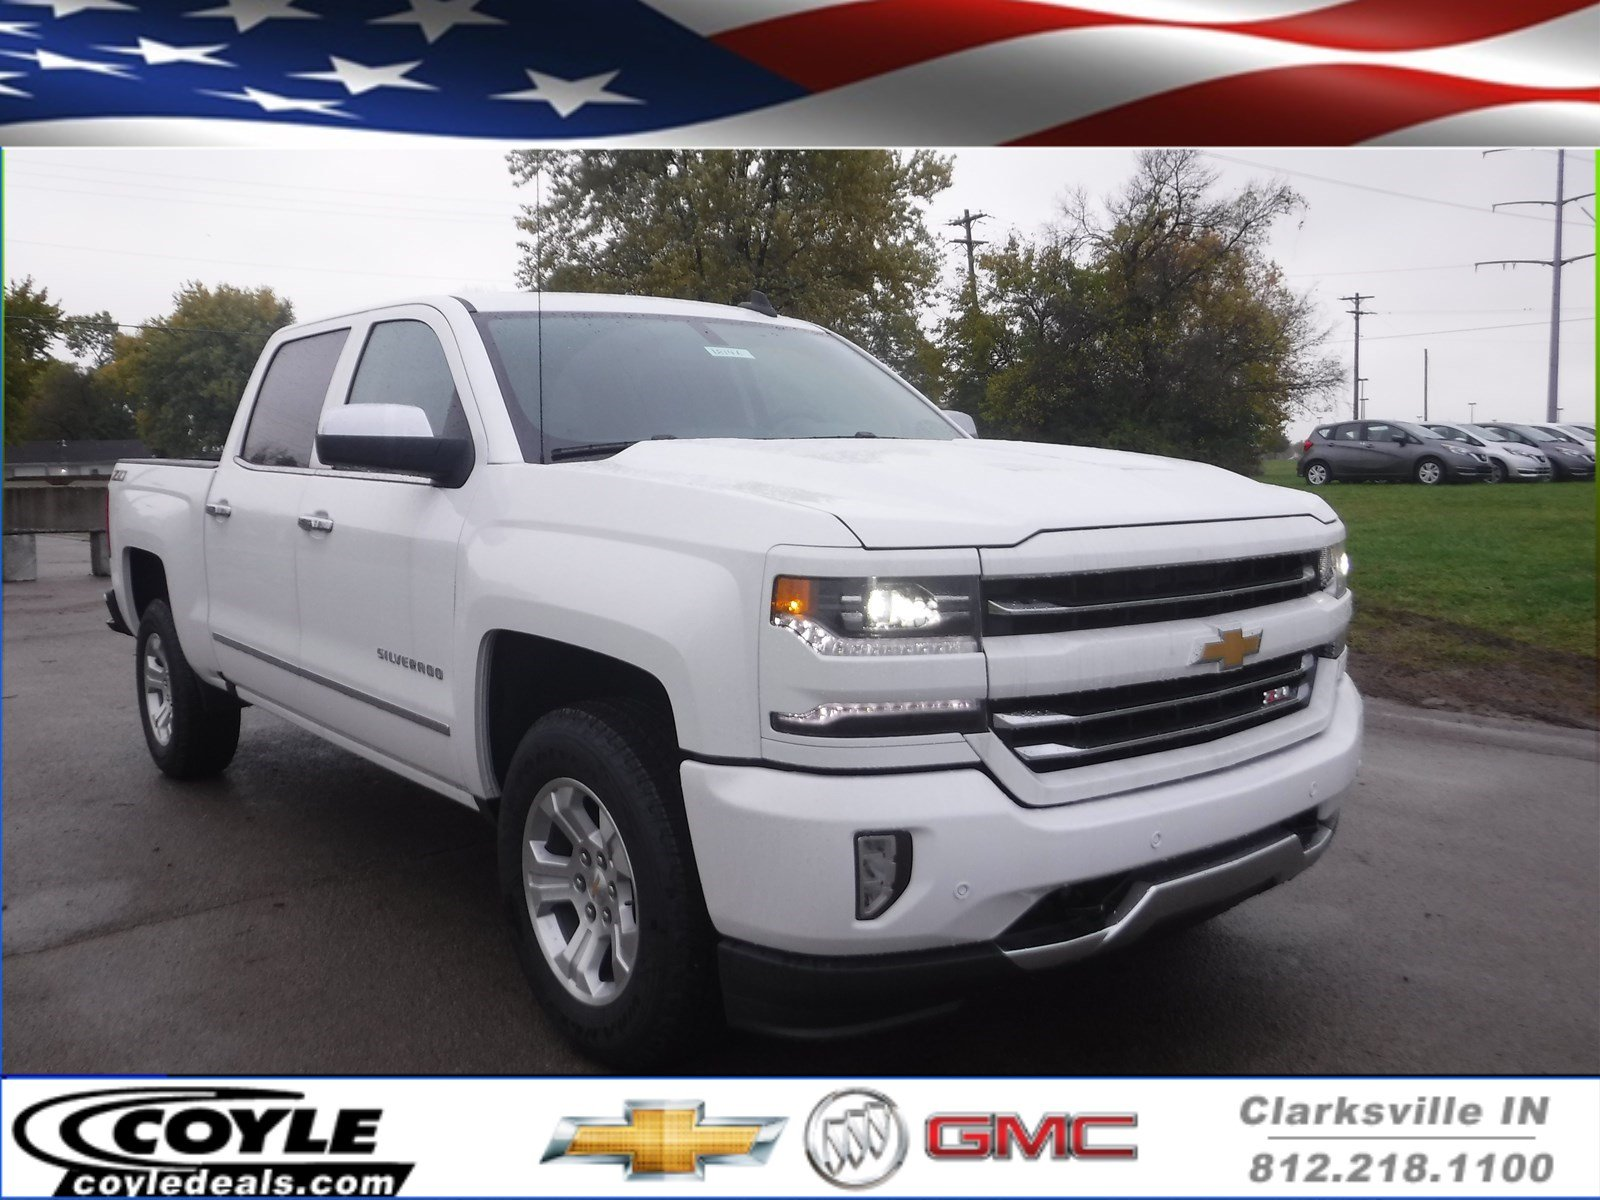 reviews prevnext chevrolet truck country first trend high front view test silverado highcountry